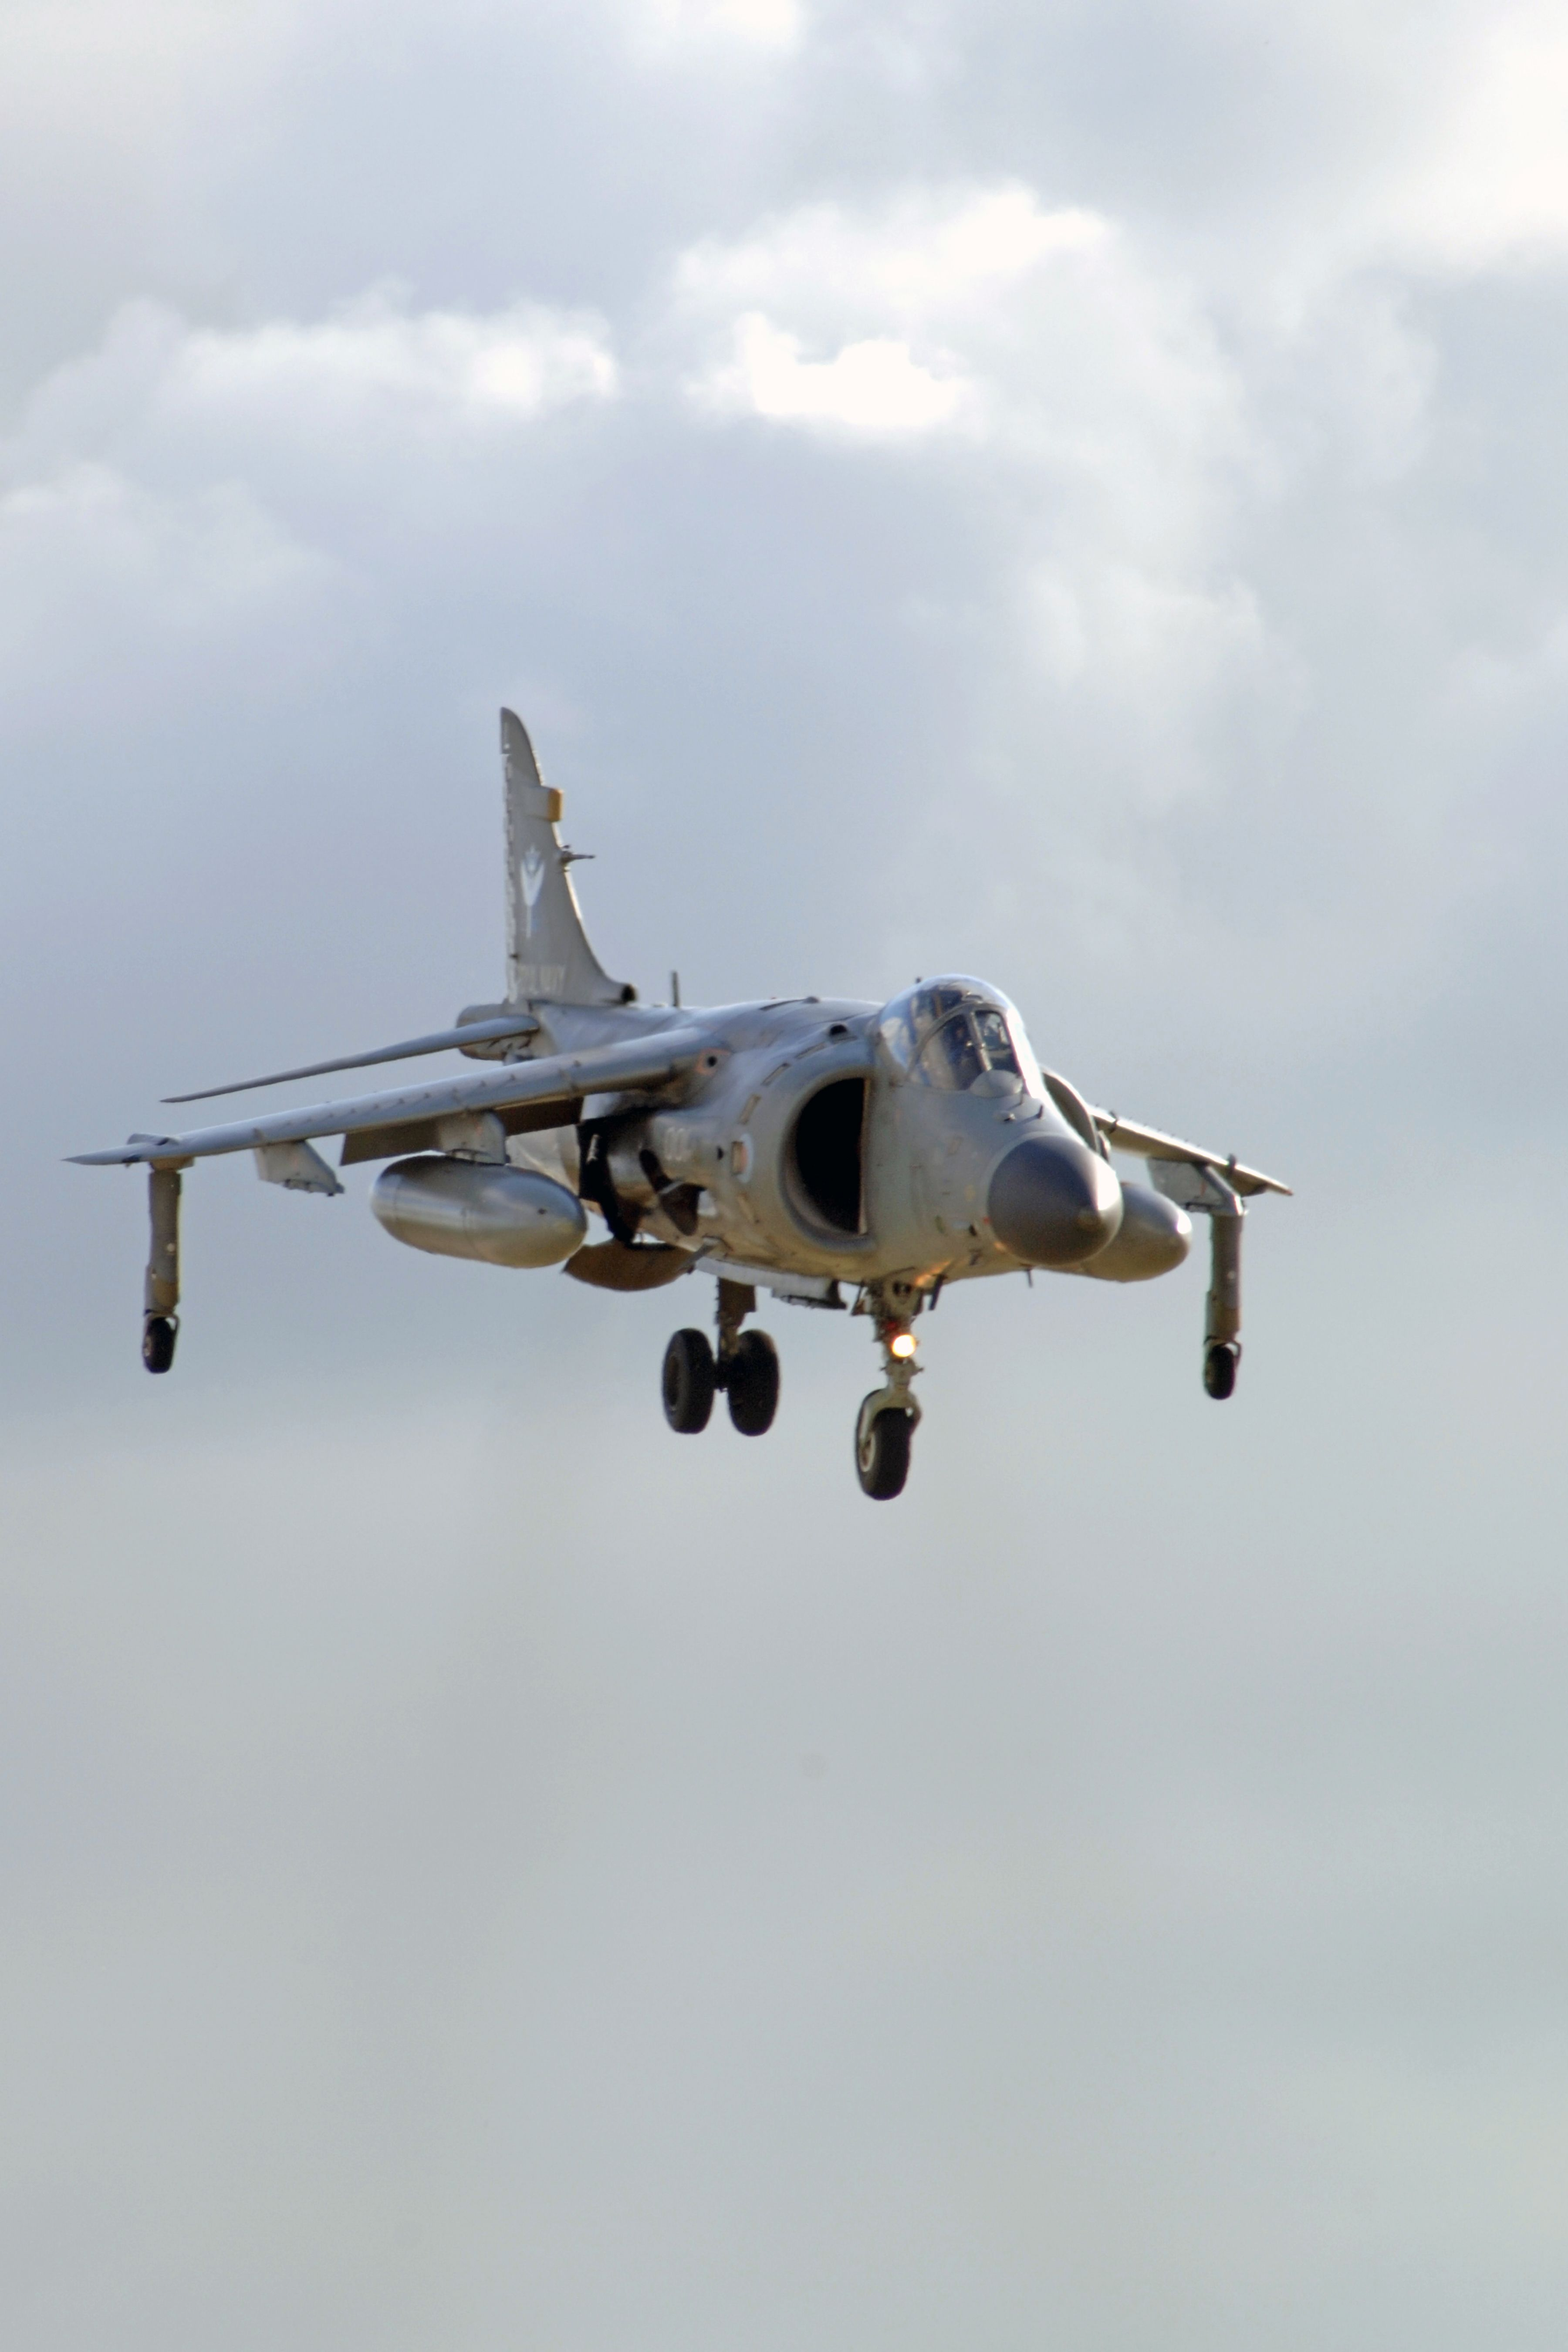 Hawker Siddeley Harrier VSTOL bows to the queen at RNAS